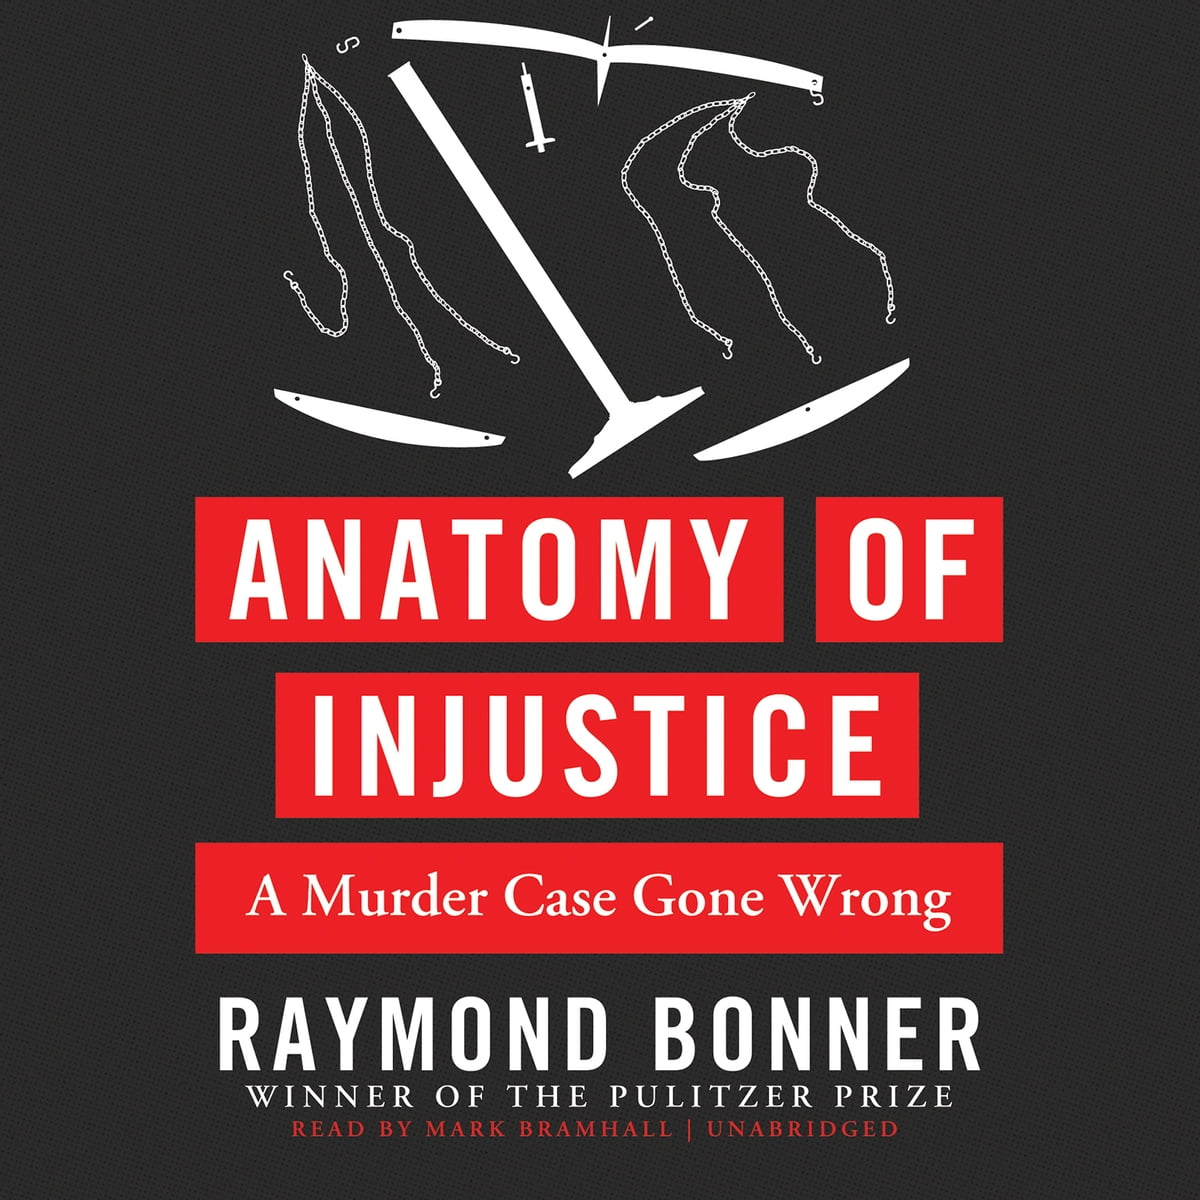 Anatomy Of Injustice Audiobook By Raymond Bonner 9781483053295